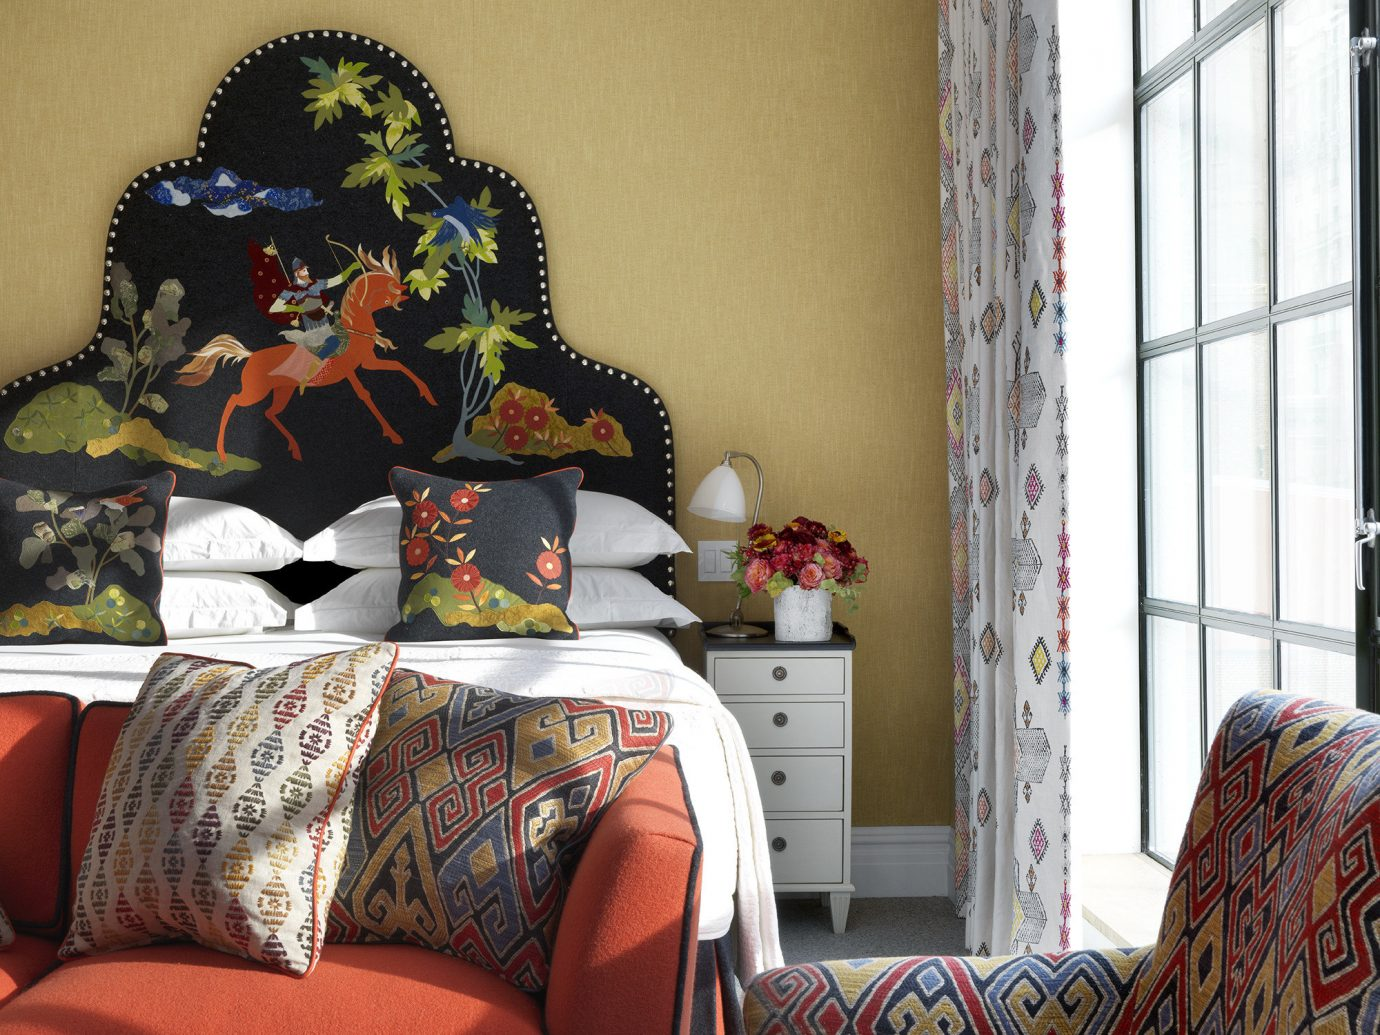 The Whitby, Hotels NYC indoor wall room clothing Living art interior design furniture textile colorful decorated colored